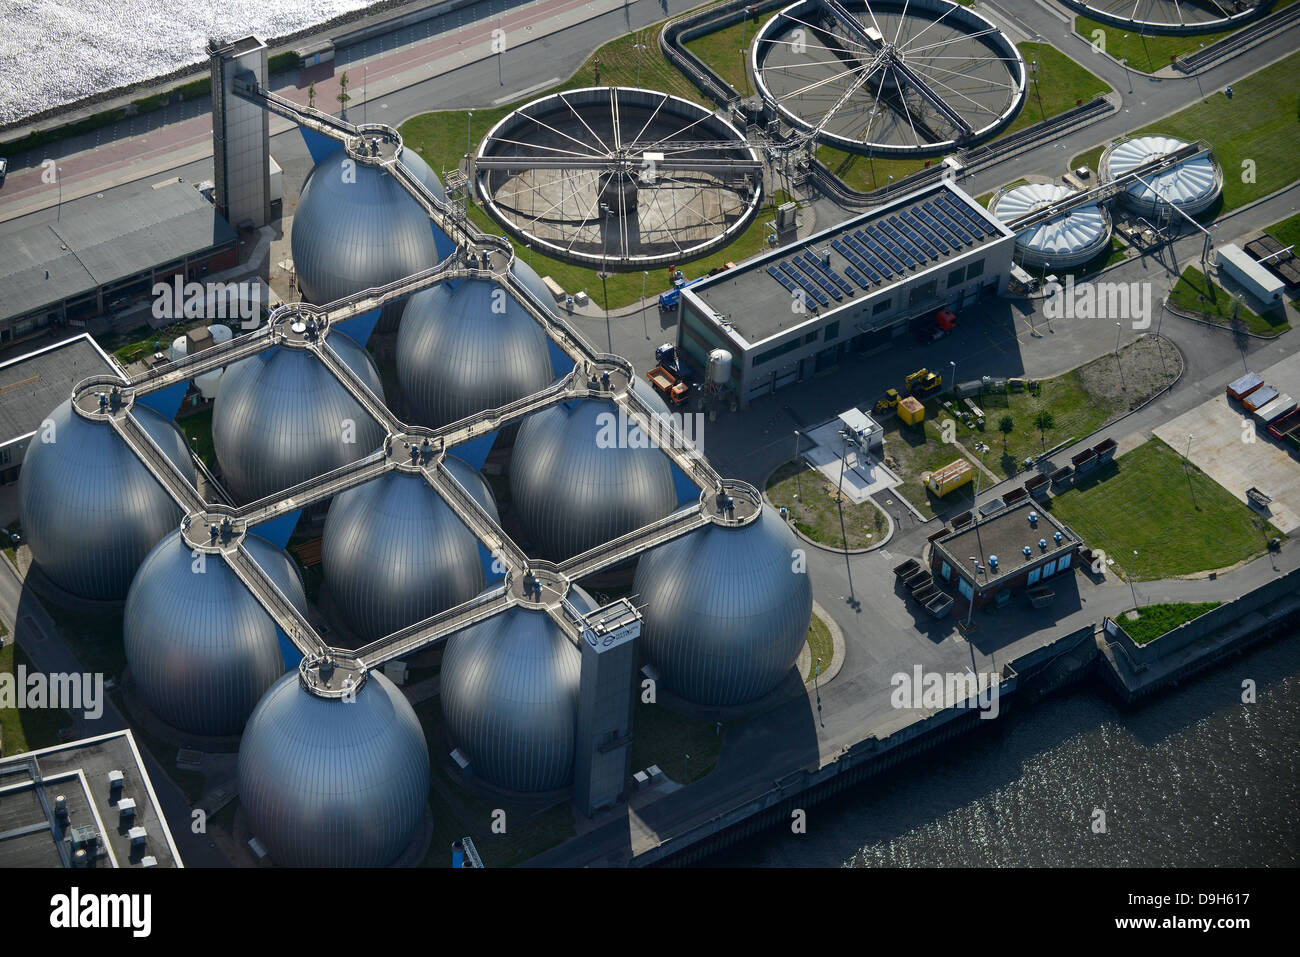 GERMANY Hamburg, sewage treatment and biogas plant of company Hamburg Wasser, biogas is processed from waste water in the steel tanks, digester gas tower and Clarifier bassin, the Sewage sludge is burned Stock Photo